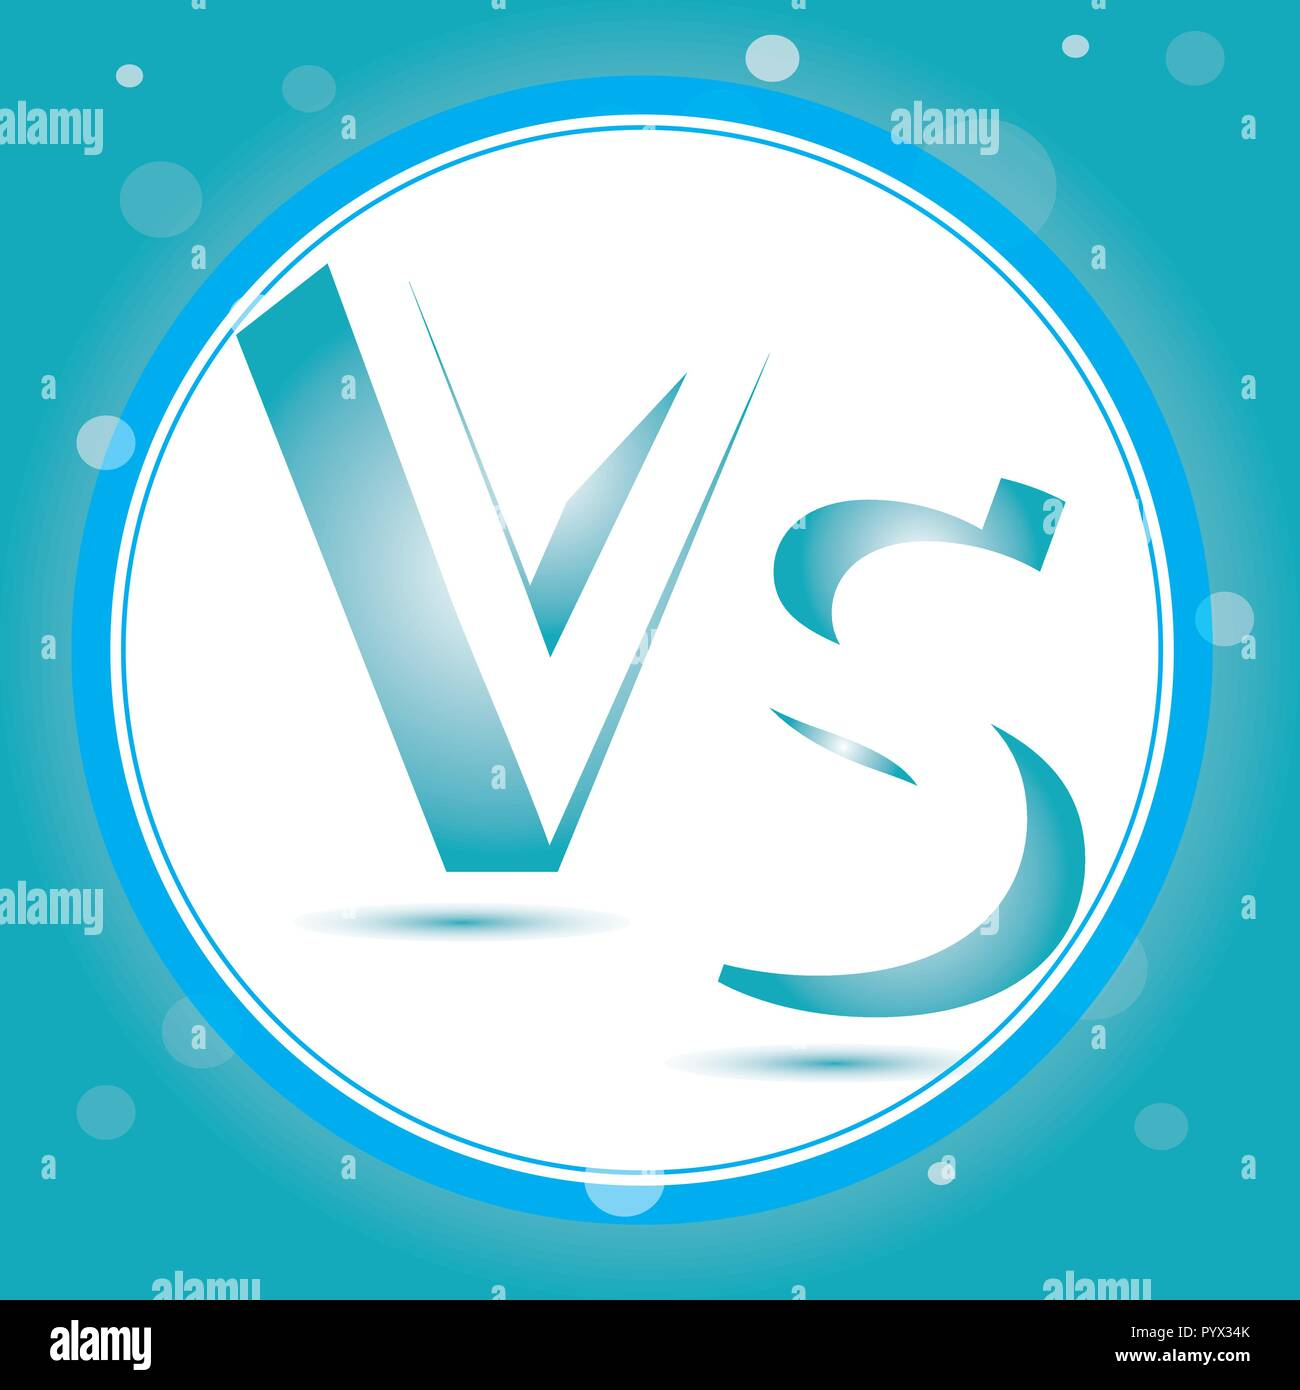 Versus Logo. VS Vector Letters Illustration. Competition Icon. Fight Symbol - Stock Vector